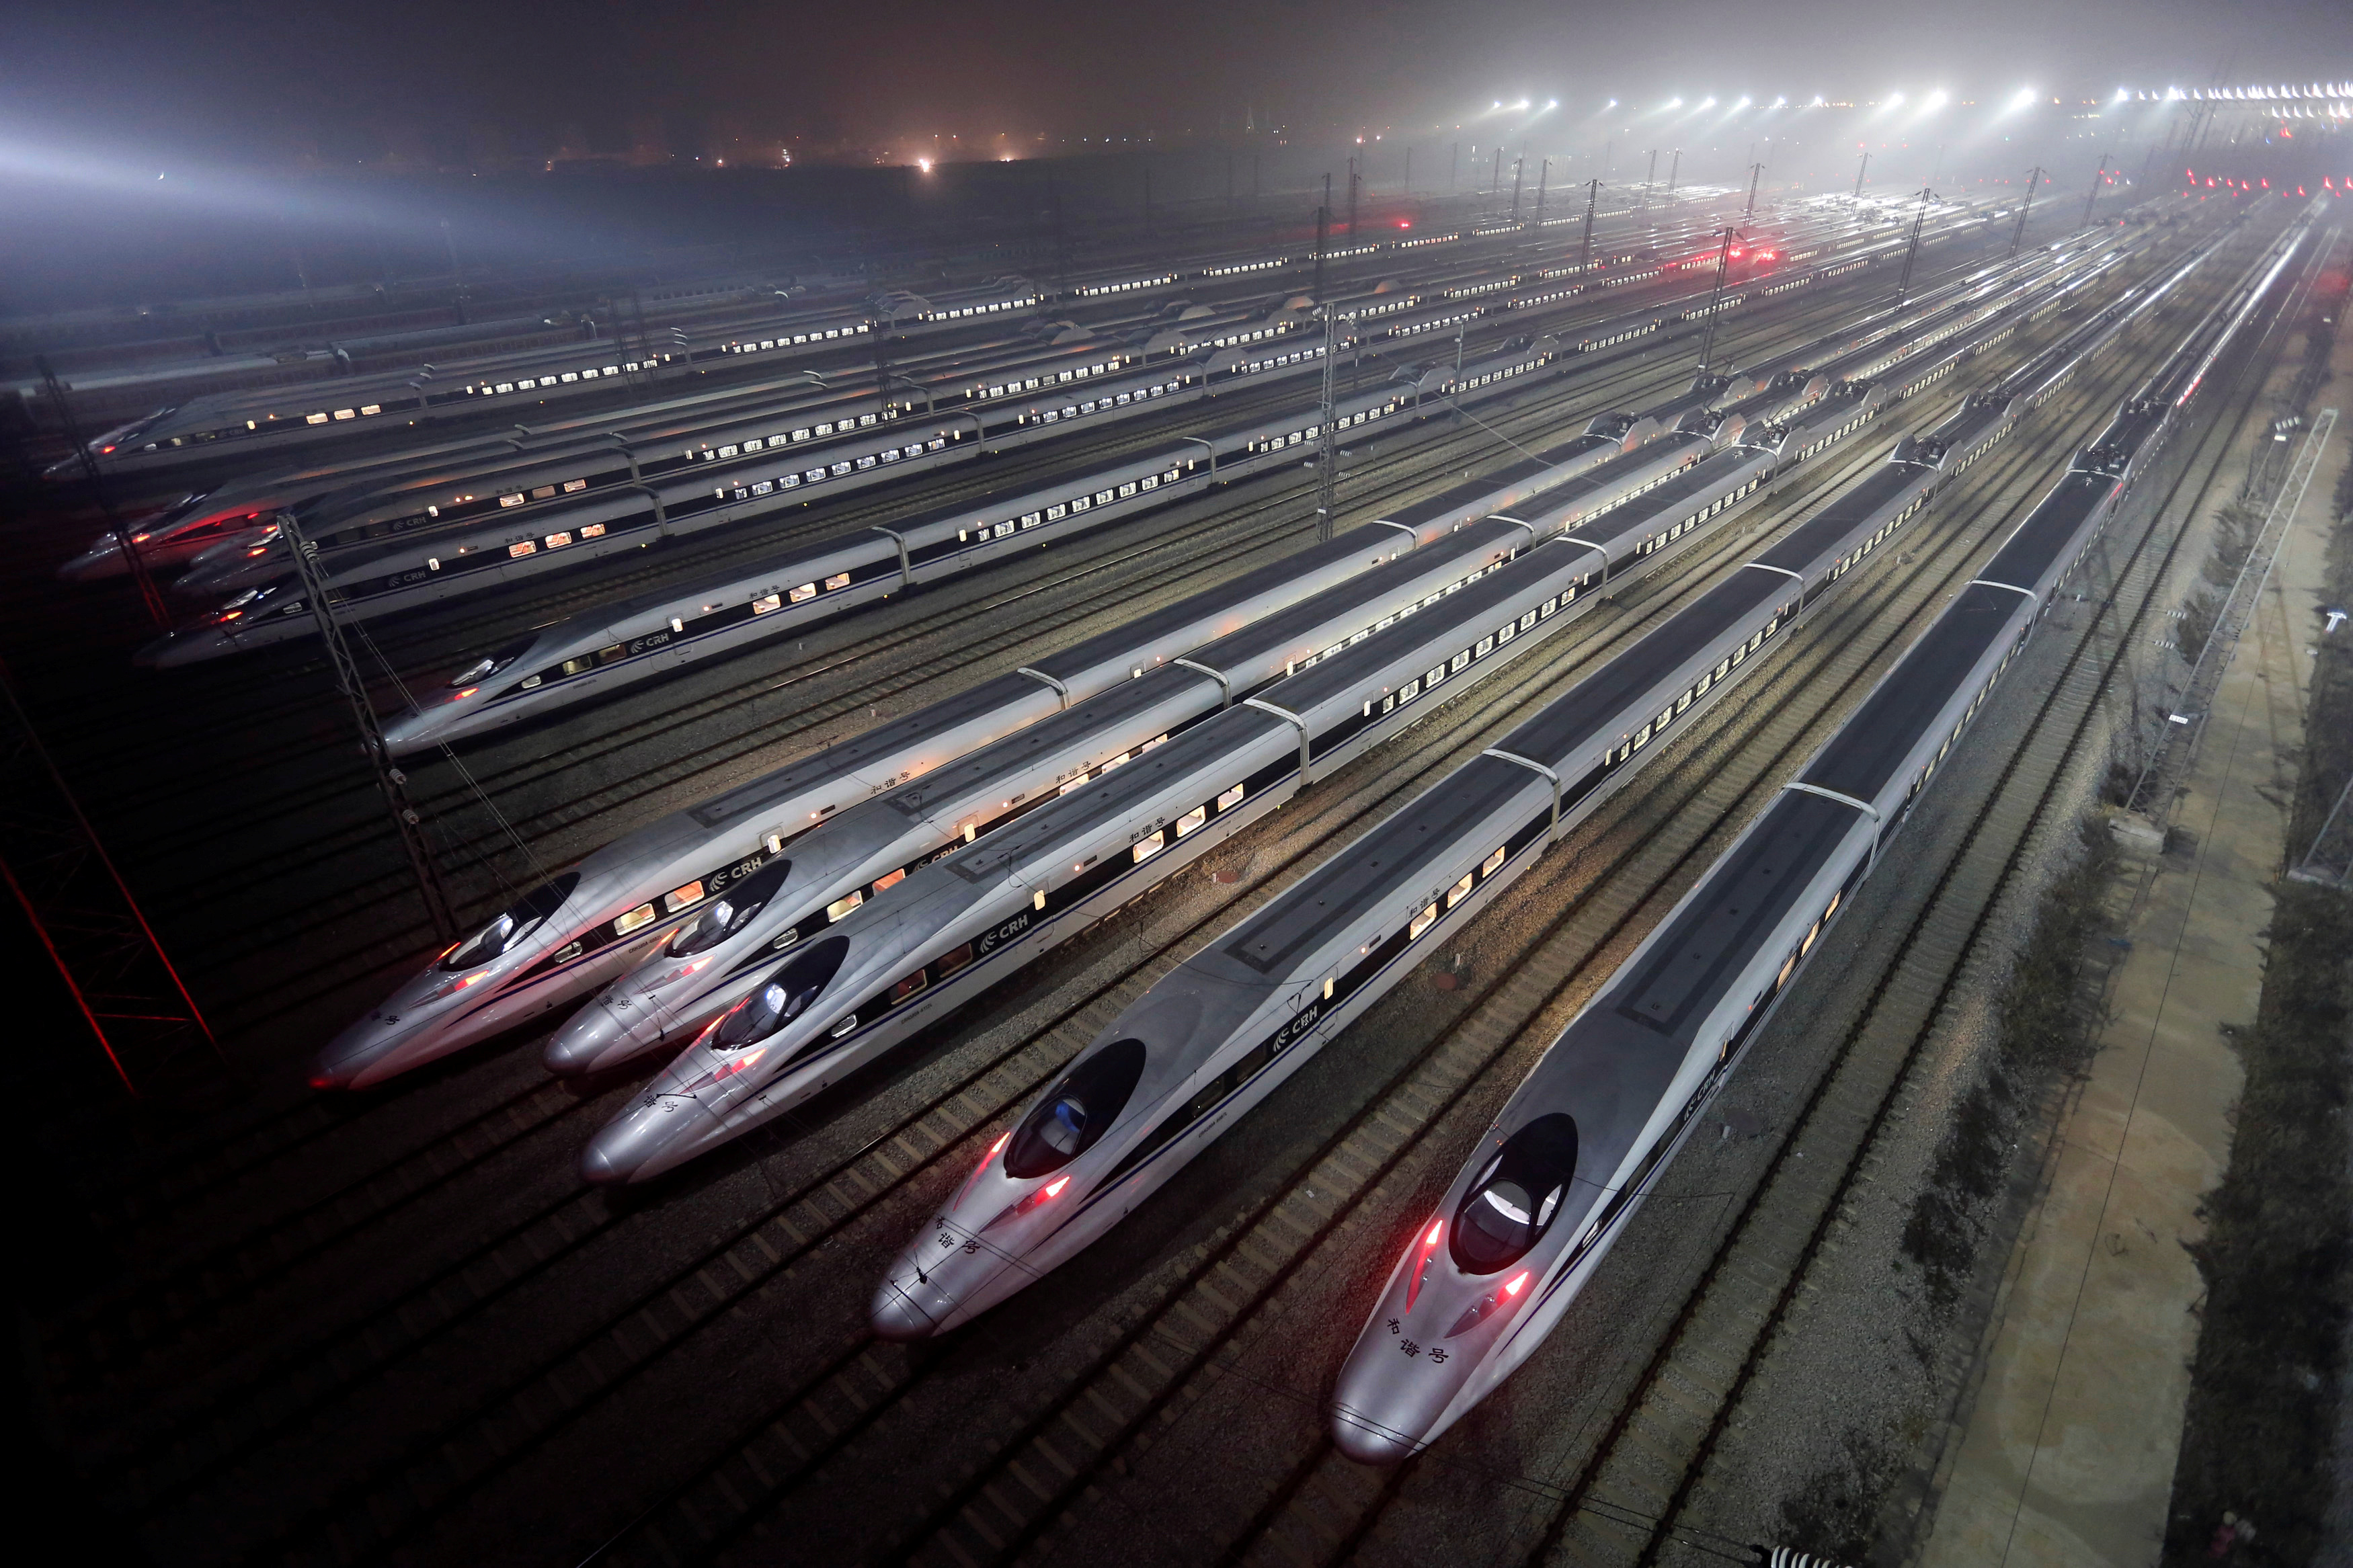 China Railway High-speed Harmony bullet trains are seen at a high-speed train maintenance base in Wuhan